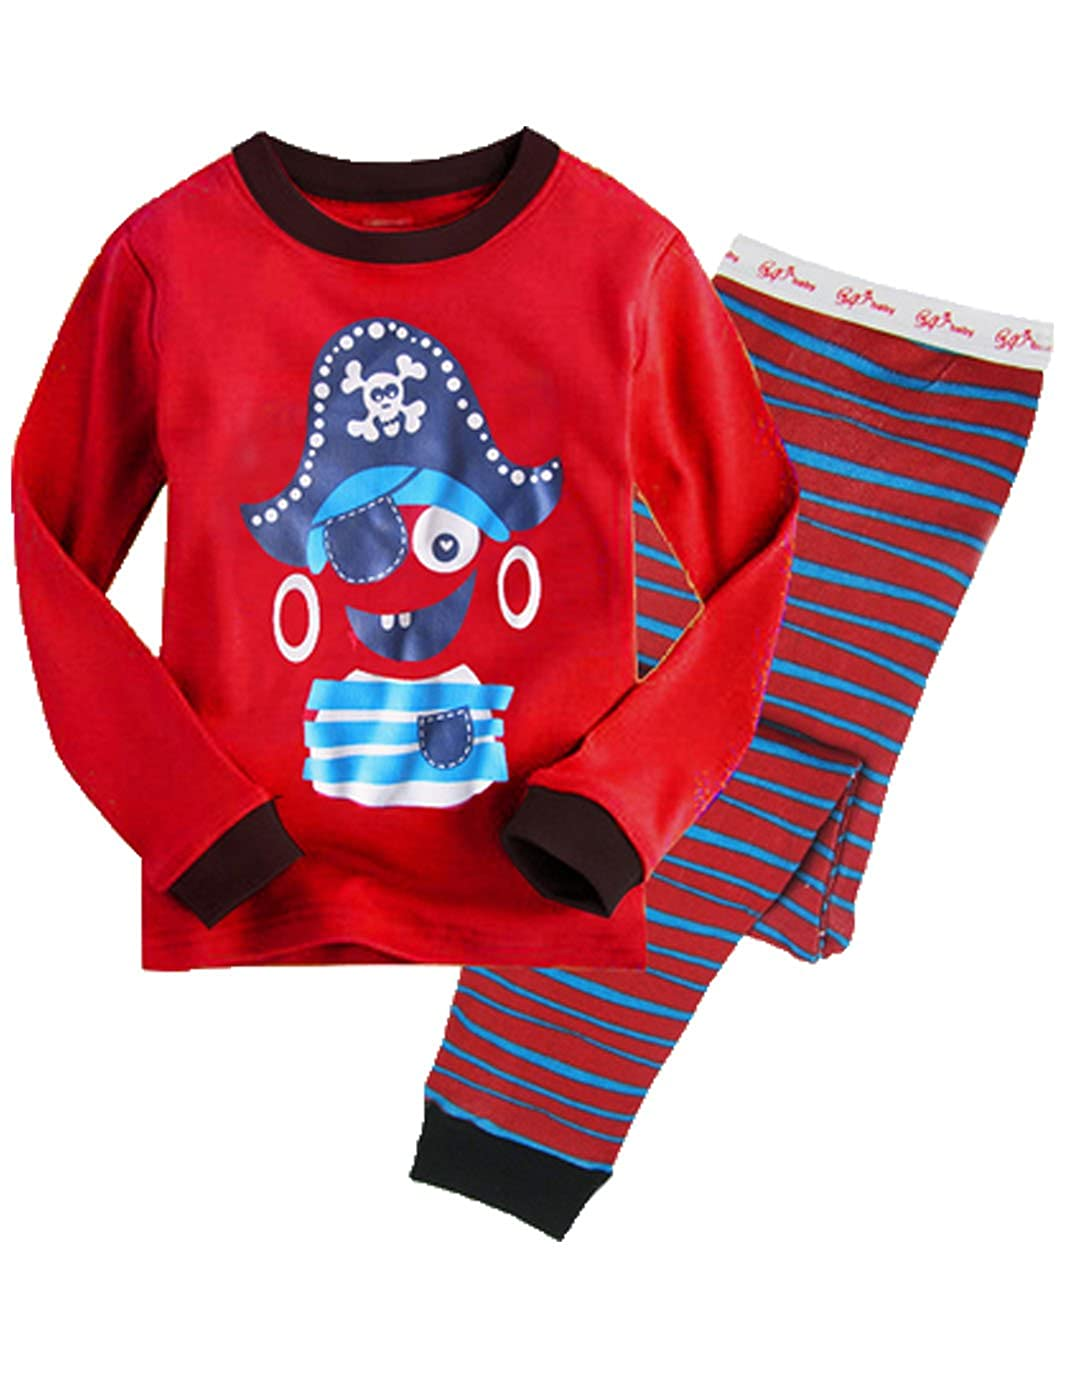 Little Boys and Girls Pajamas Sets 100/% Cotton Clothes Toddler Pjs Kids